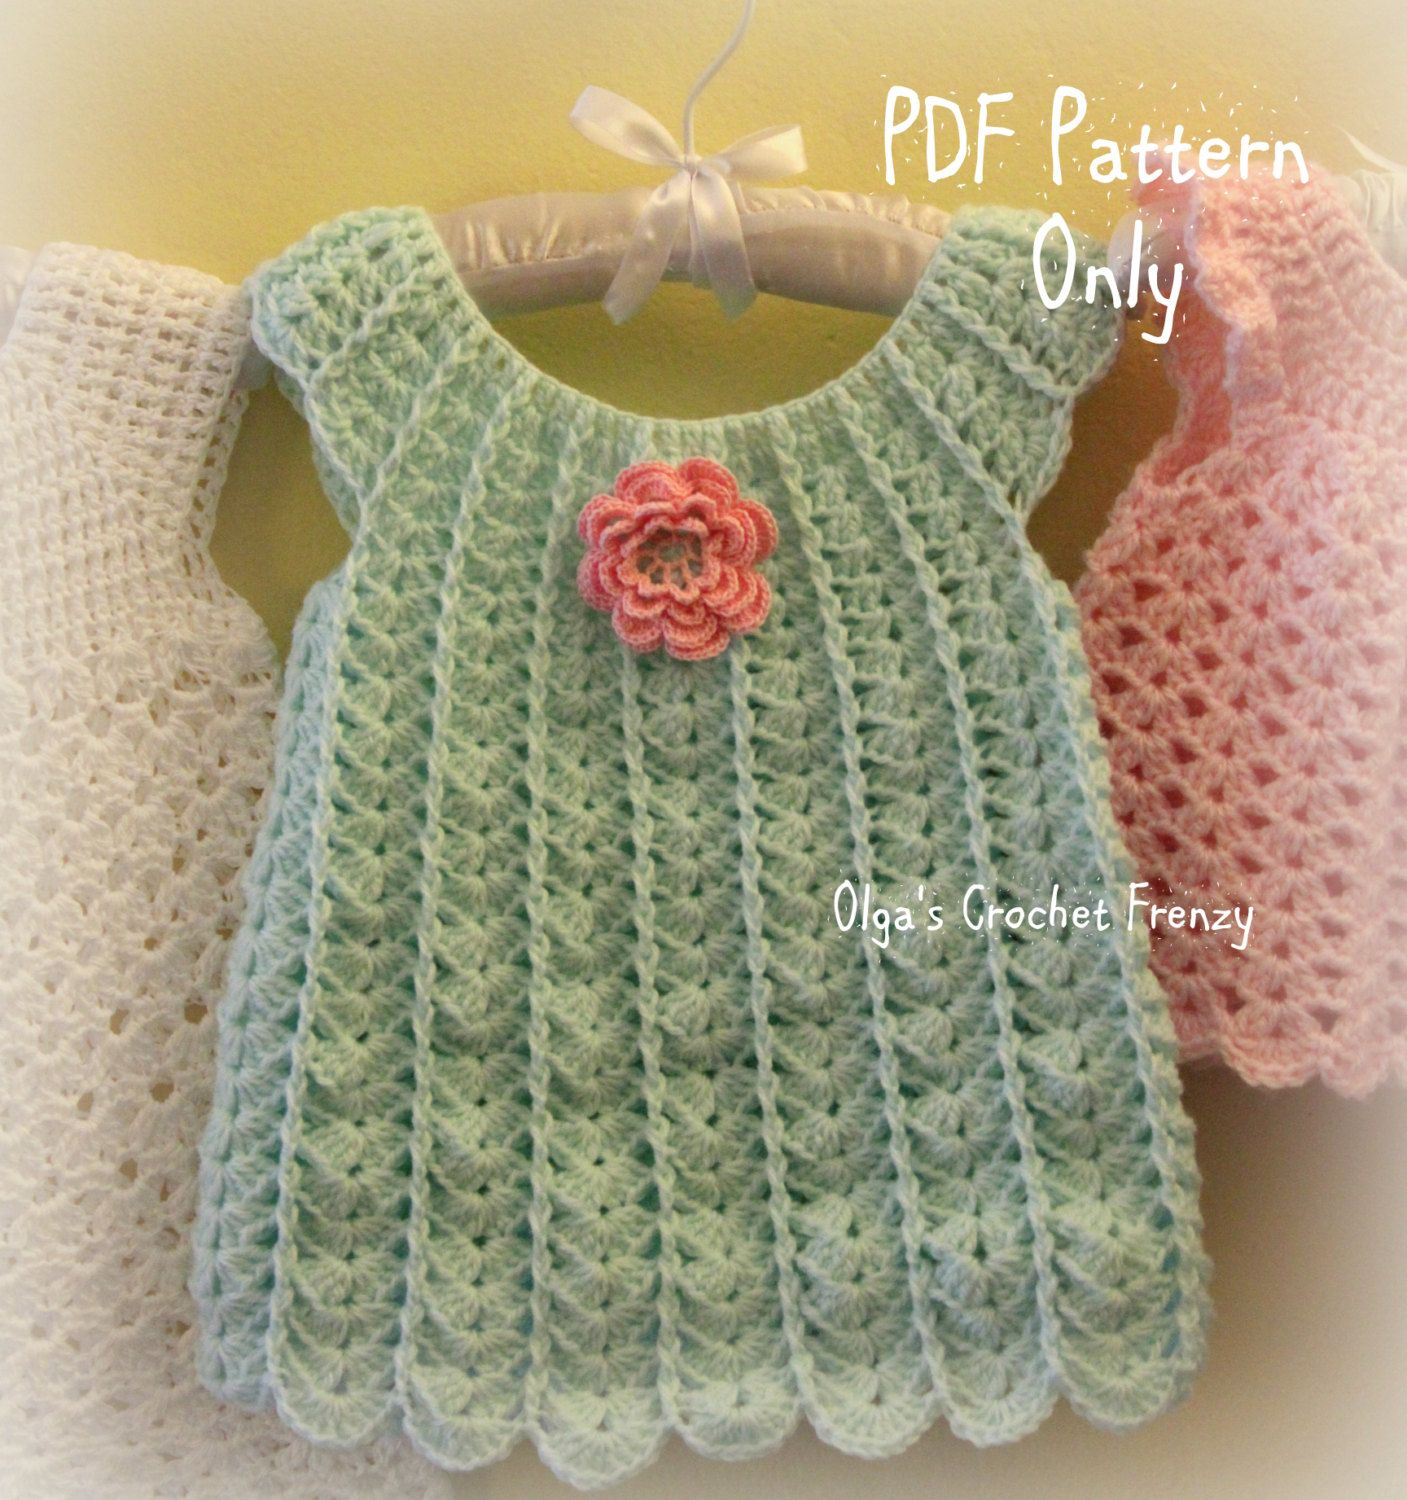 Shells baby dress crochet pattern size 3 6 months easy to make shells baby dress crochet pattern size 3 6 by olgascrochetfrenzy bankloansurffo Choice Image